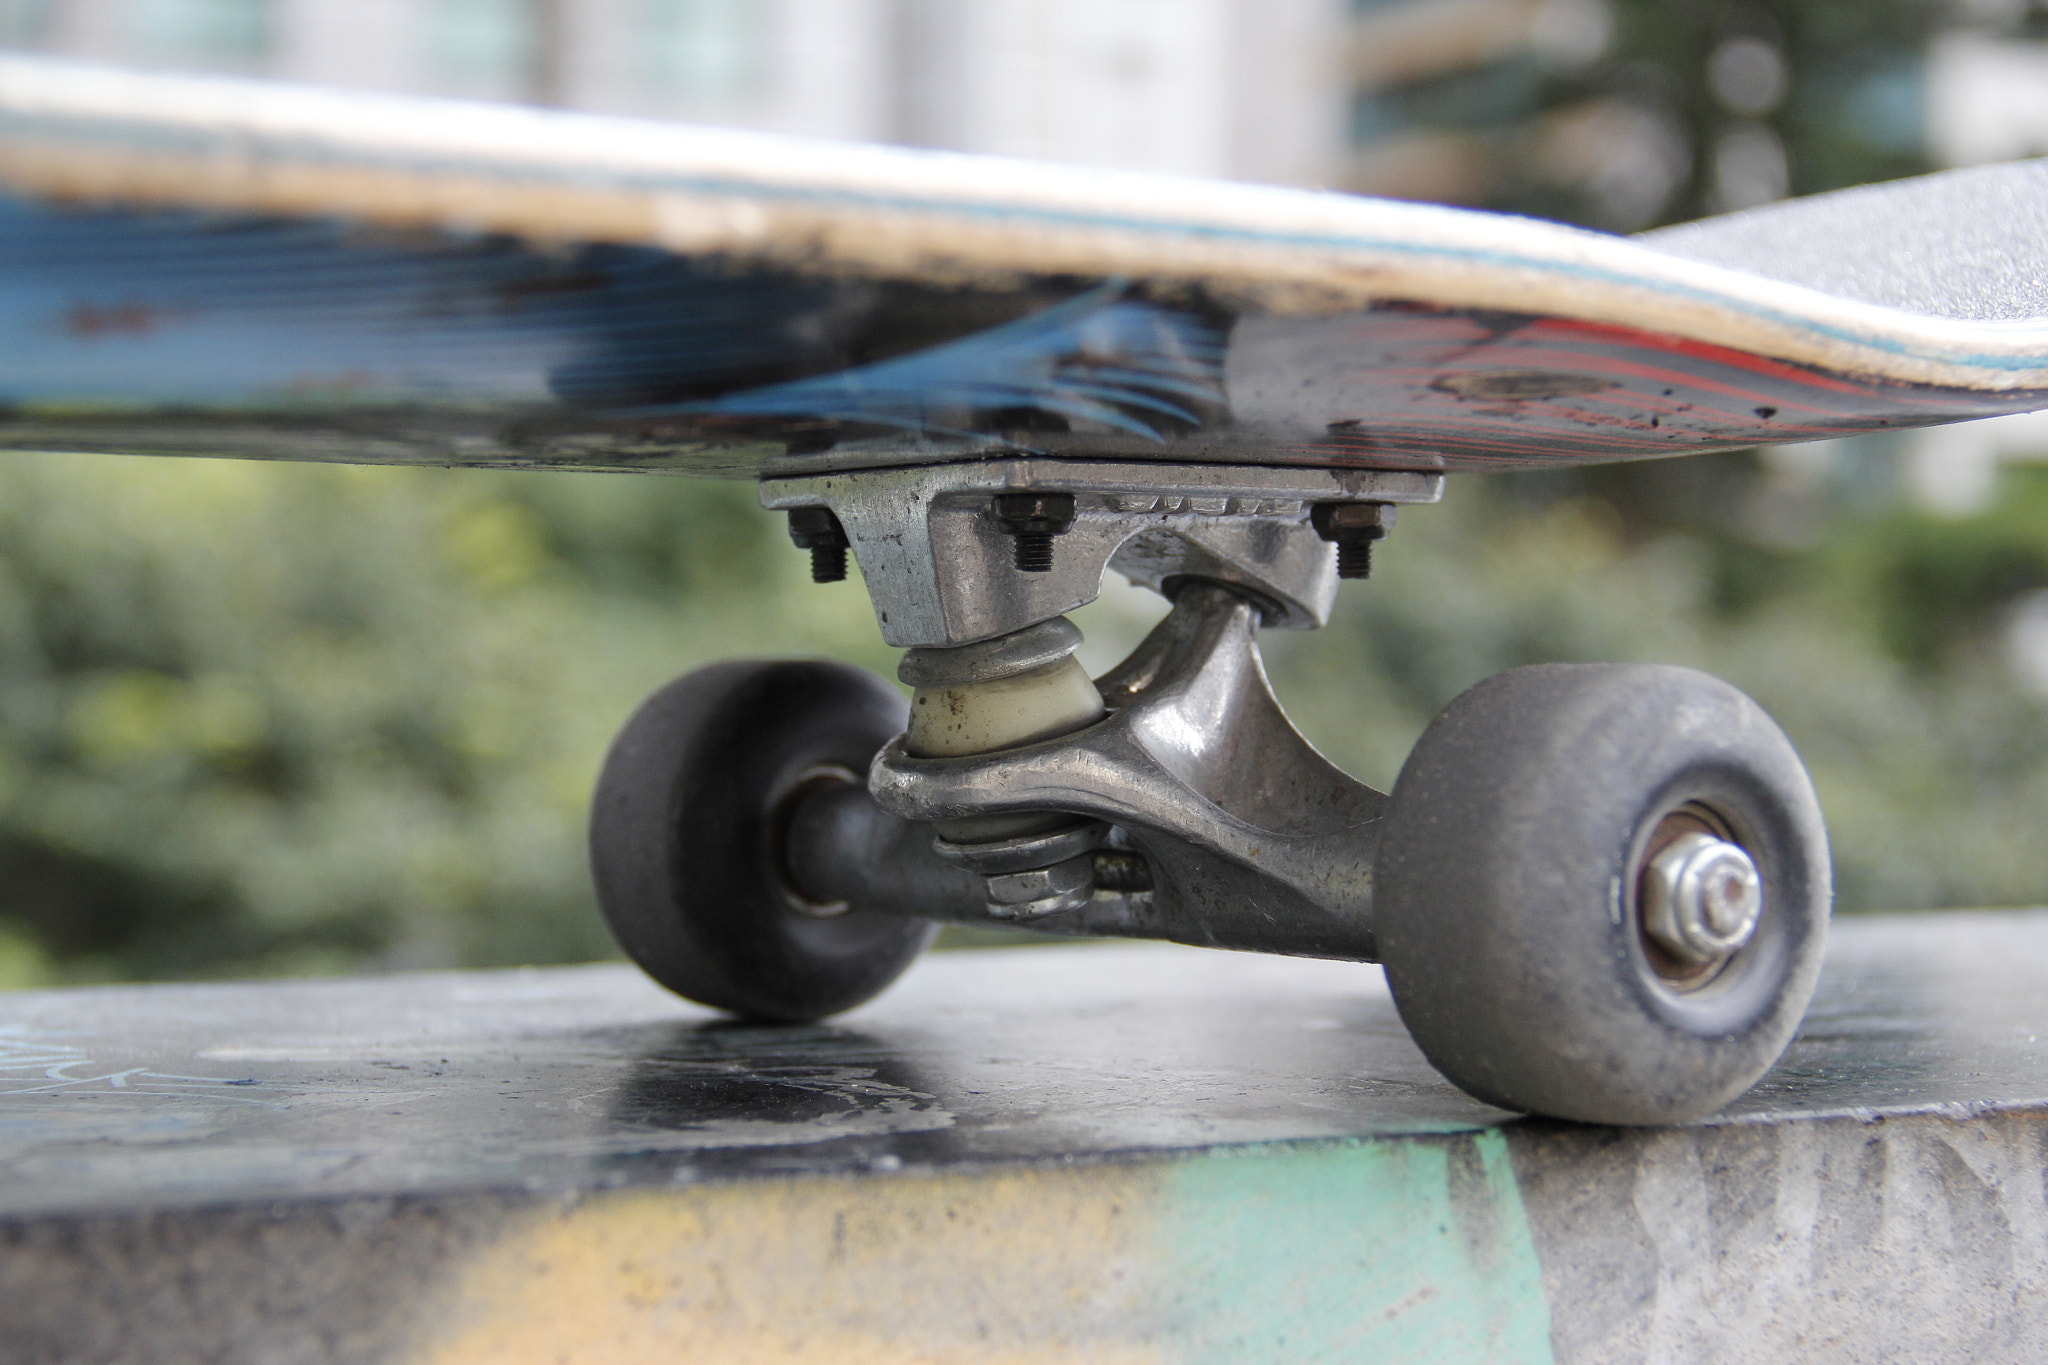 Photograph Skate by Daniel Antunes on 500px